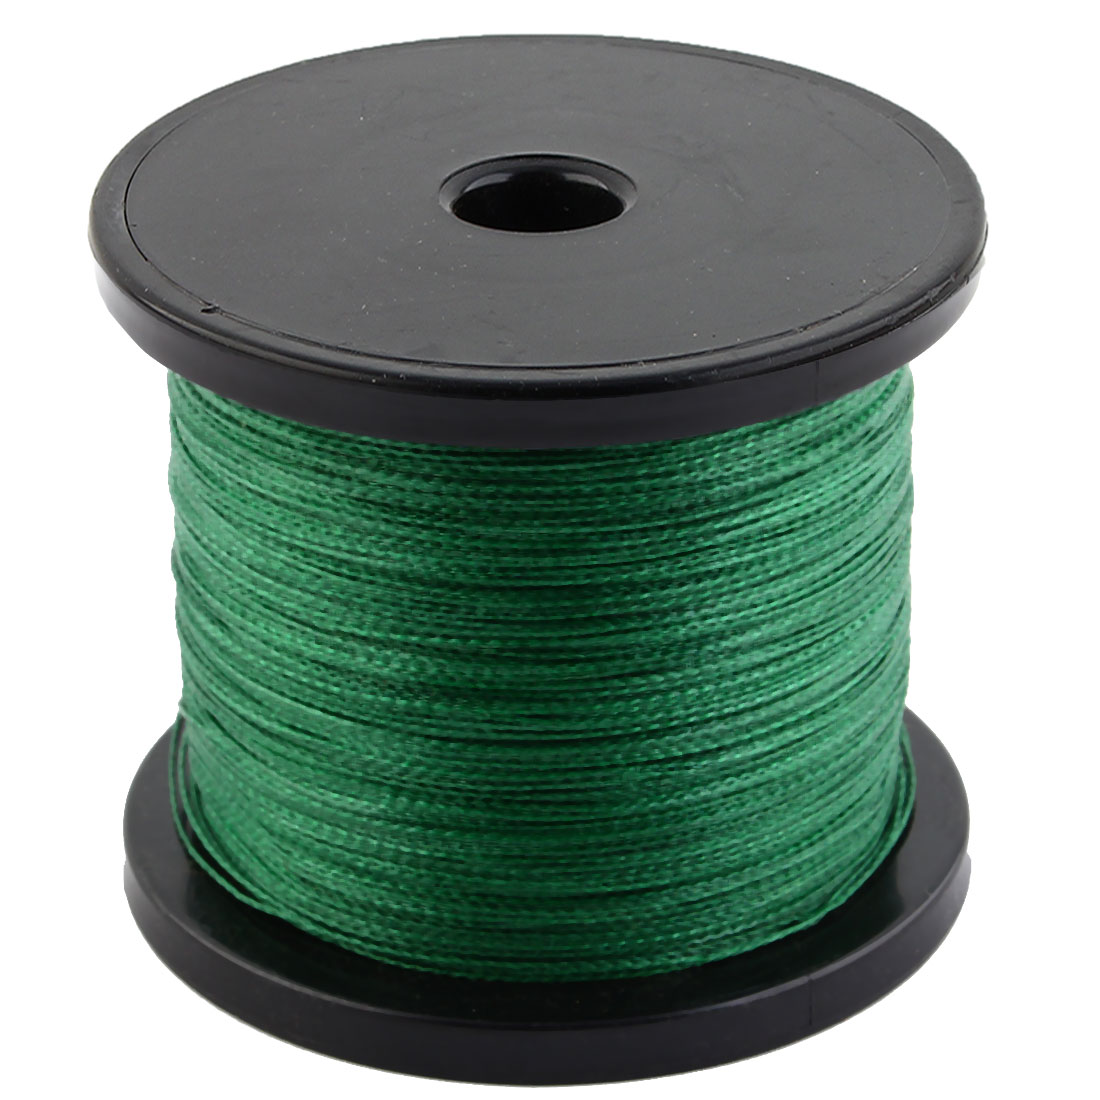 PE Braided Fishing Line Angling String Beading Thread Cord Green 500m Length